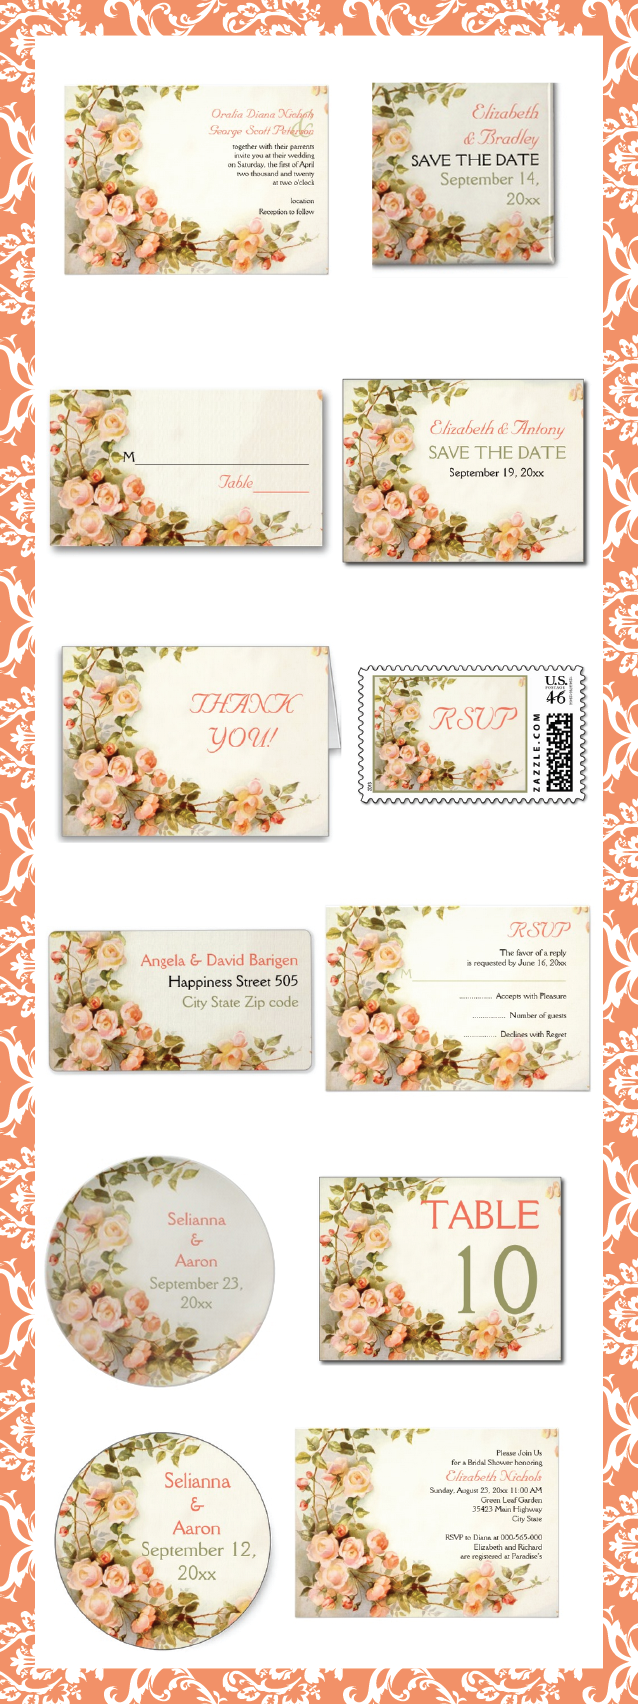 Vintage romantic painting of roses wedding invitations and matching stationery. #roses, #weddinginvitations, #romantic, #vintage, #floral  See more designs http://www.zazzle.com/weddings_?rf=238228936251904937=zBookmarklet